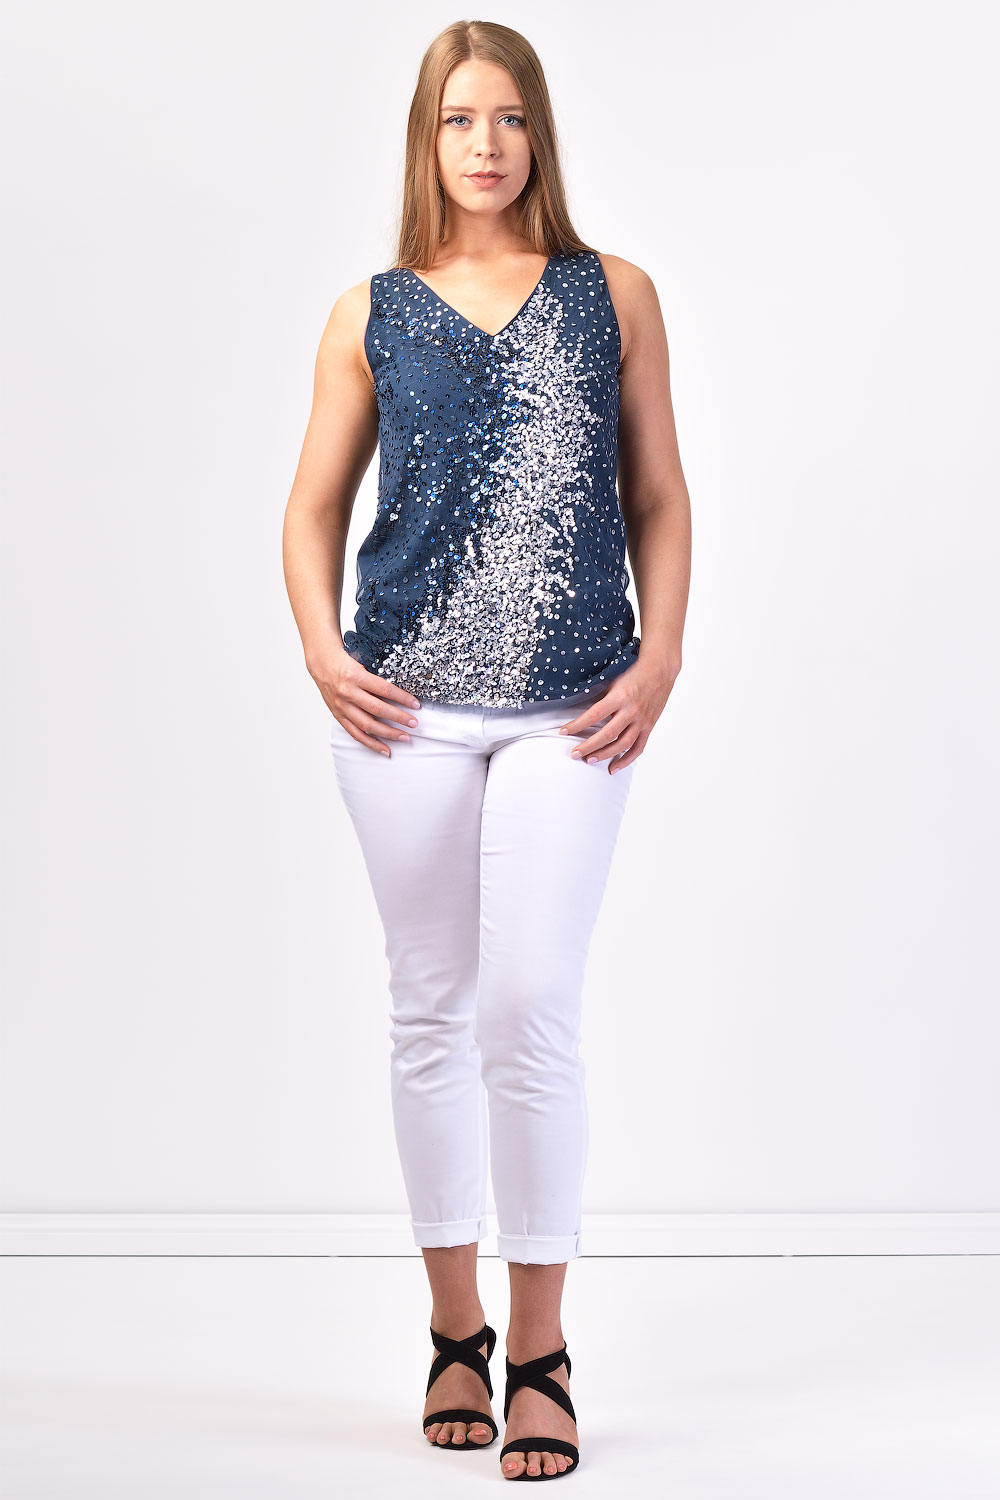 f3a5a934c95 Details about NWT  195 ITALIAN DESIGNER SEQUIN WOMEN TOP Plus Size M 12 L  14 Gorgeous!